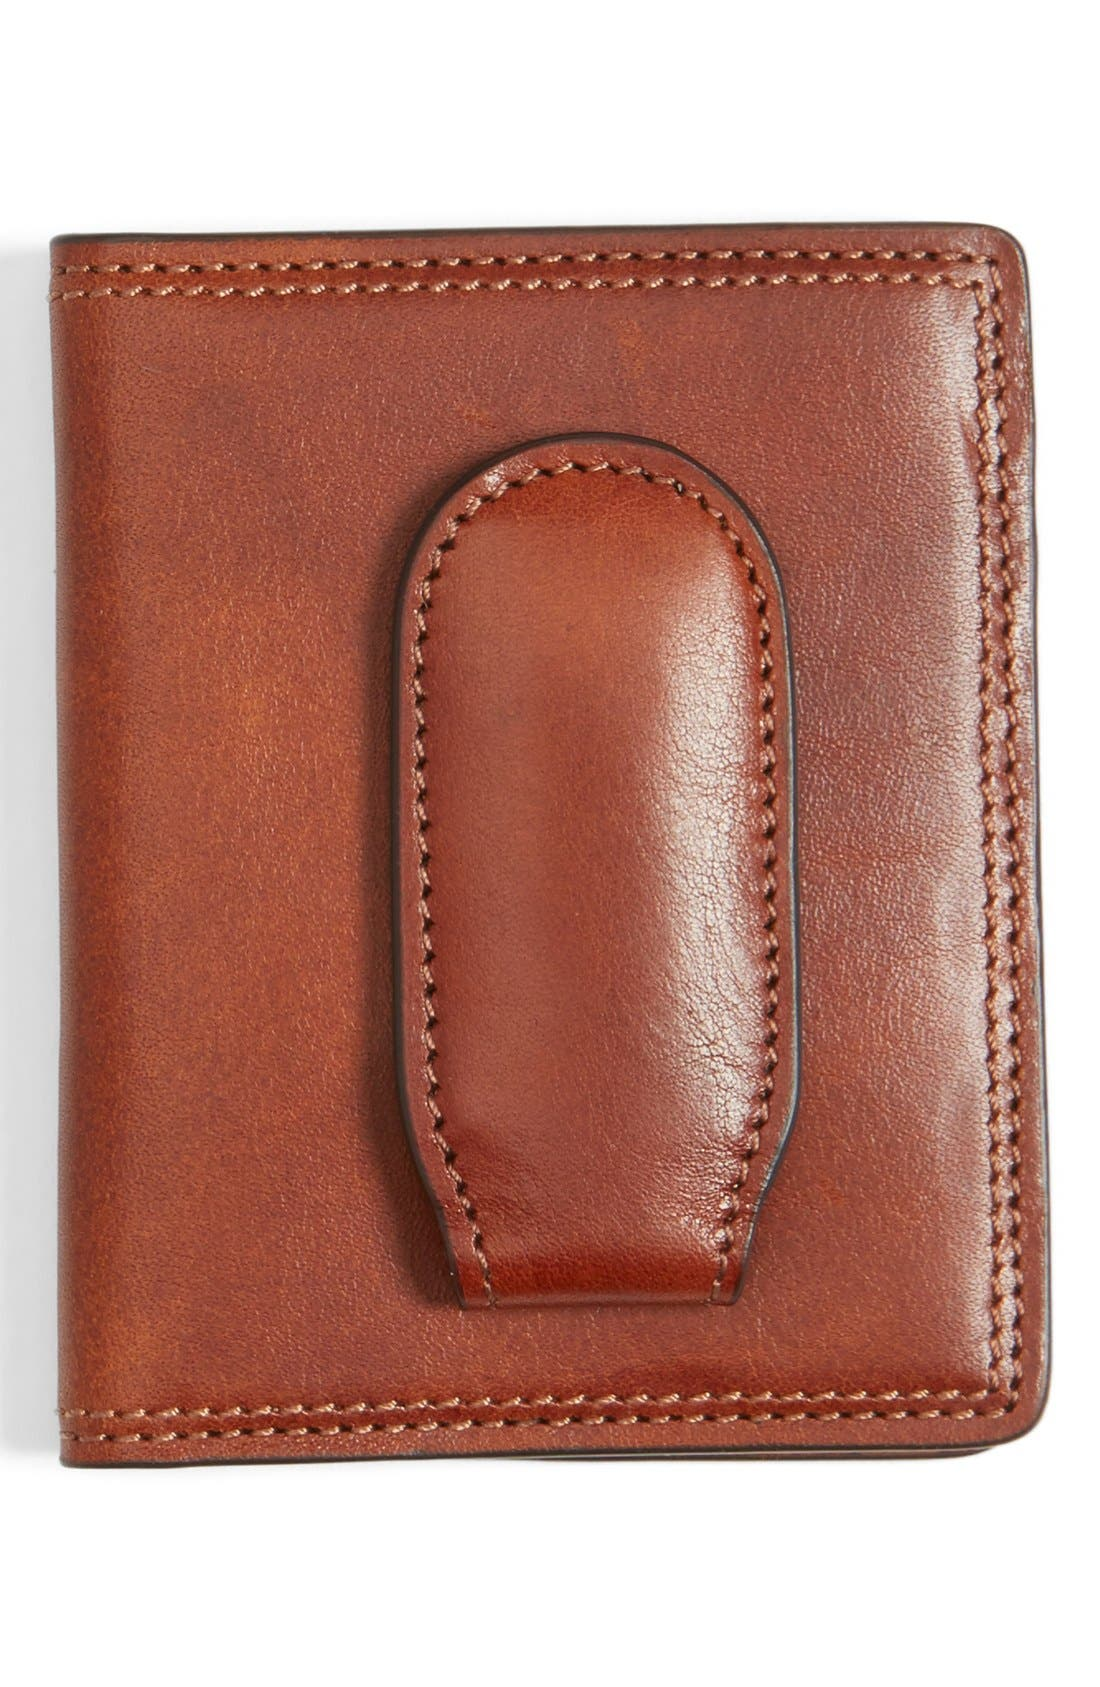 Leather Front Pocket Money Clip Wallet,                             Main thumbnail 1, color,                             233